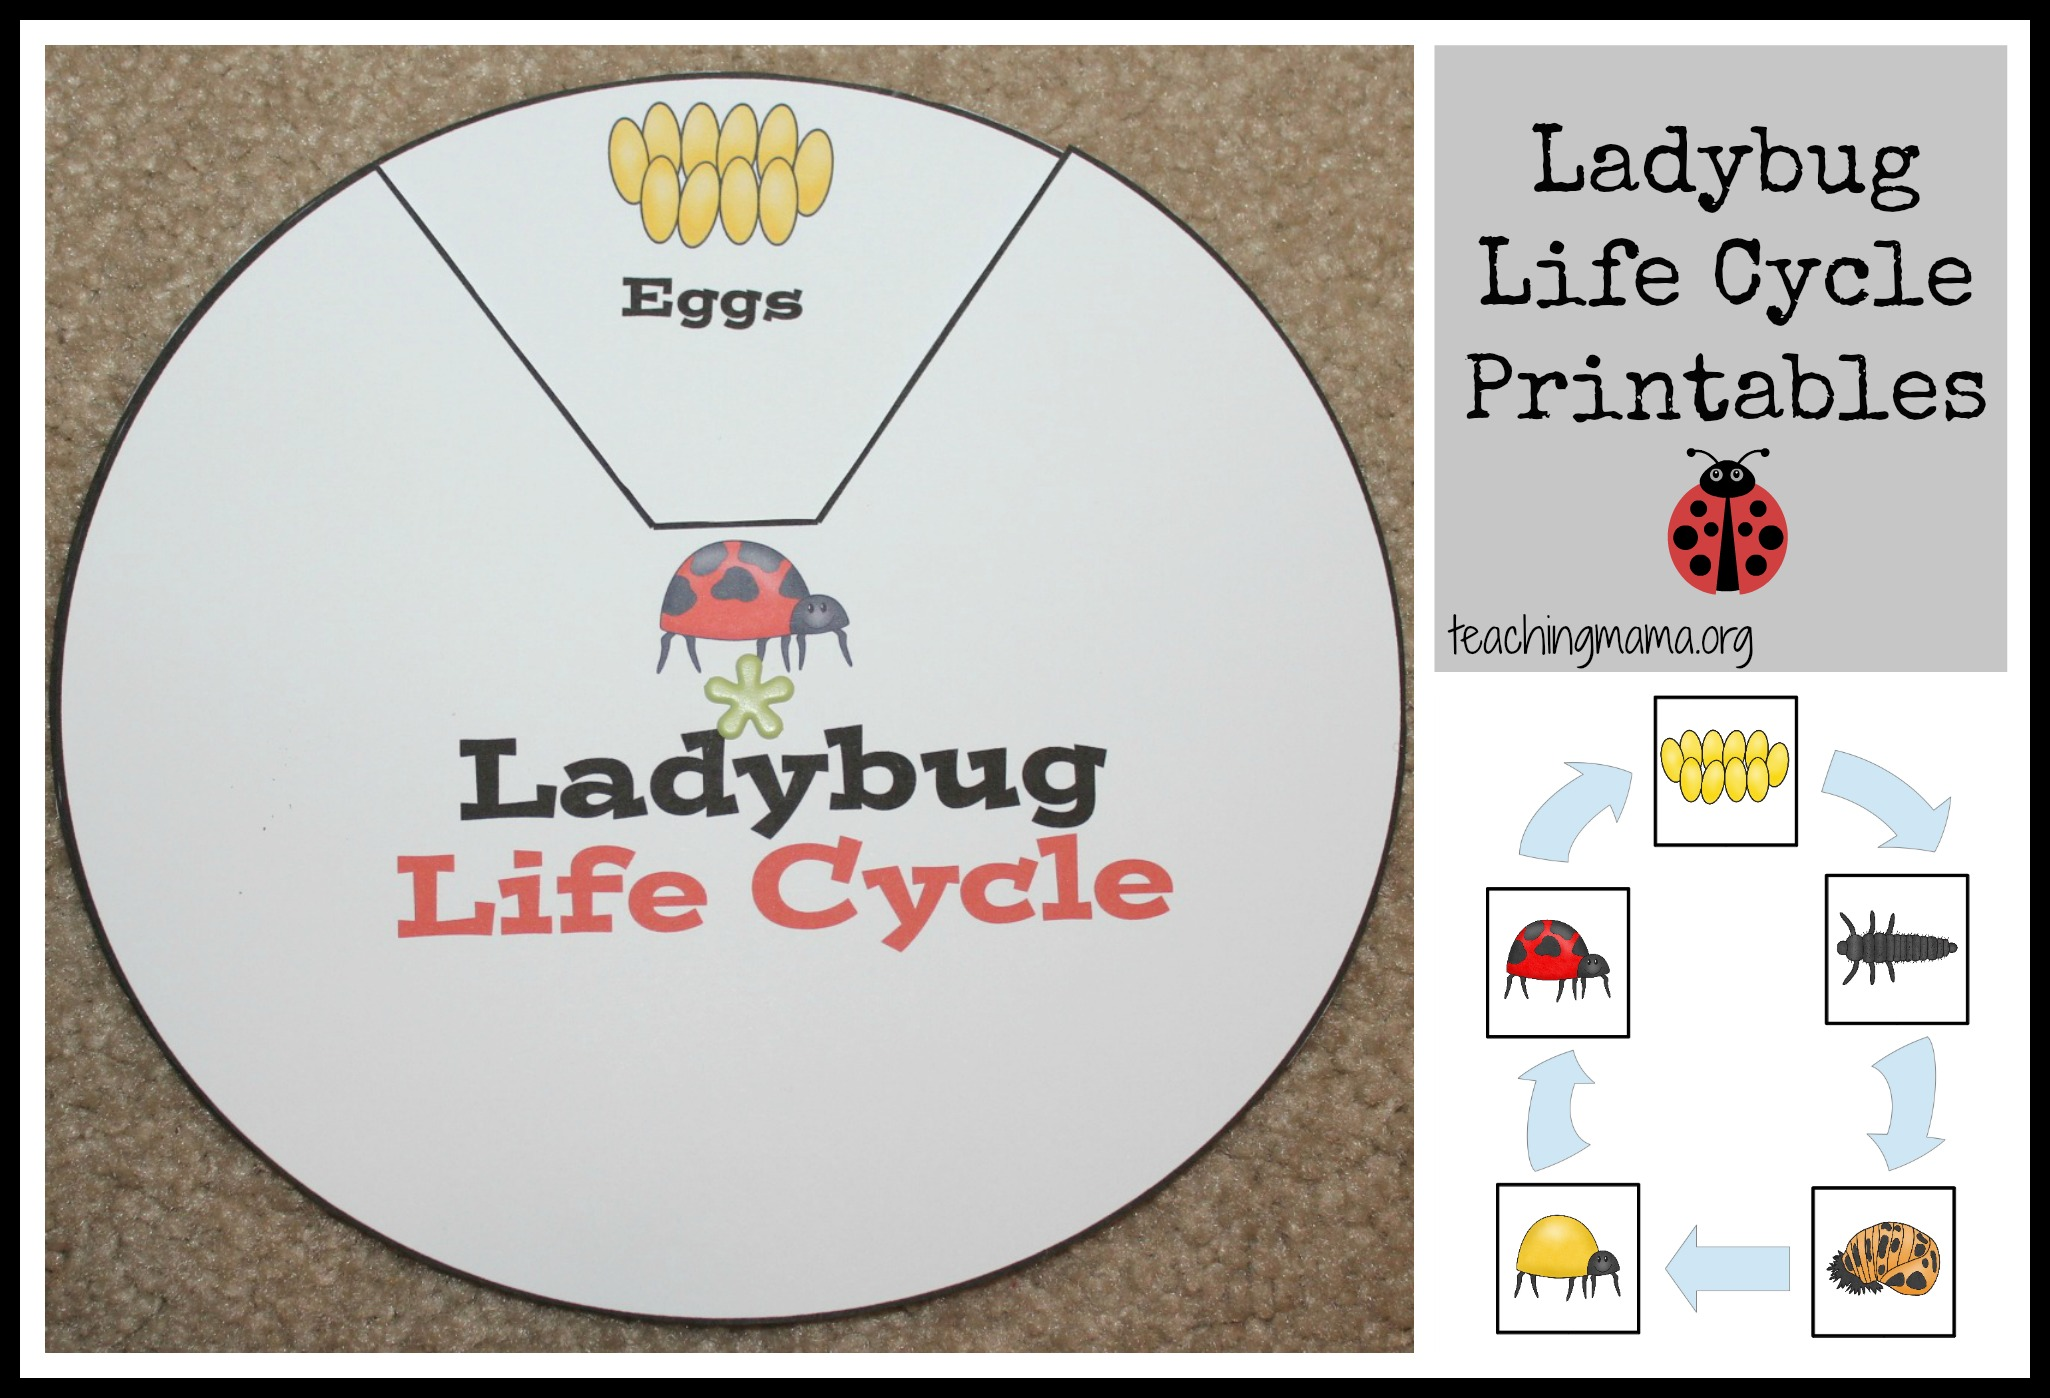 Life cycle printables activities ladybug life cycle printables activities pooptronica Gallery